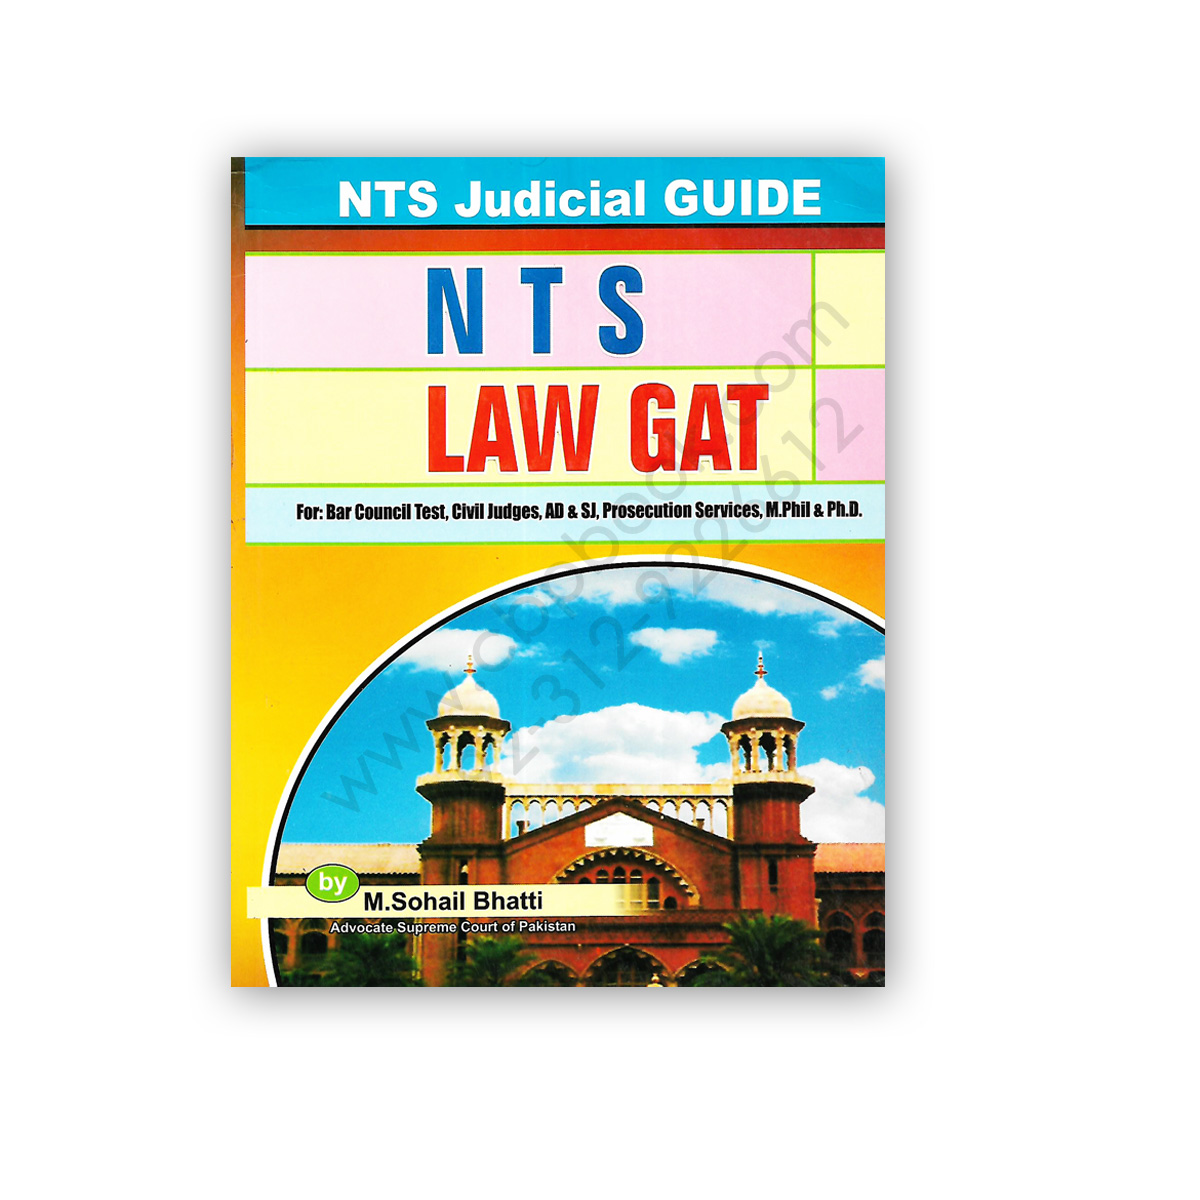 nts law gat law graduate assessment test by m sohail bhatti - bhatti sons